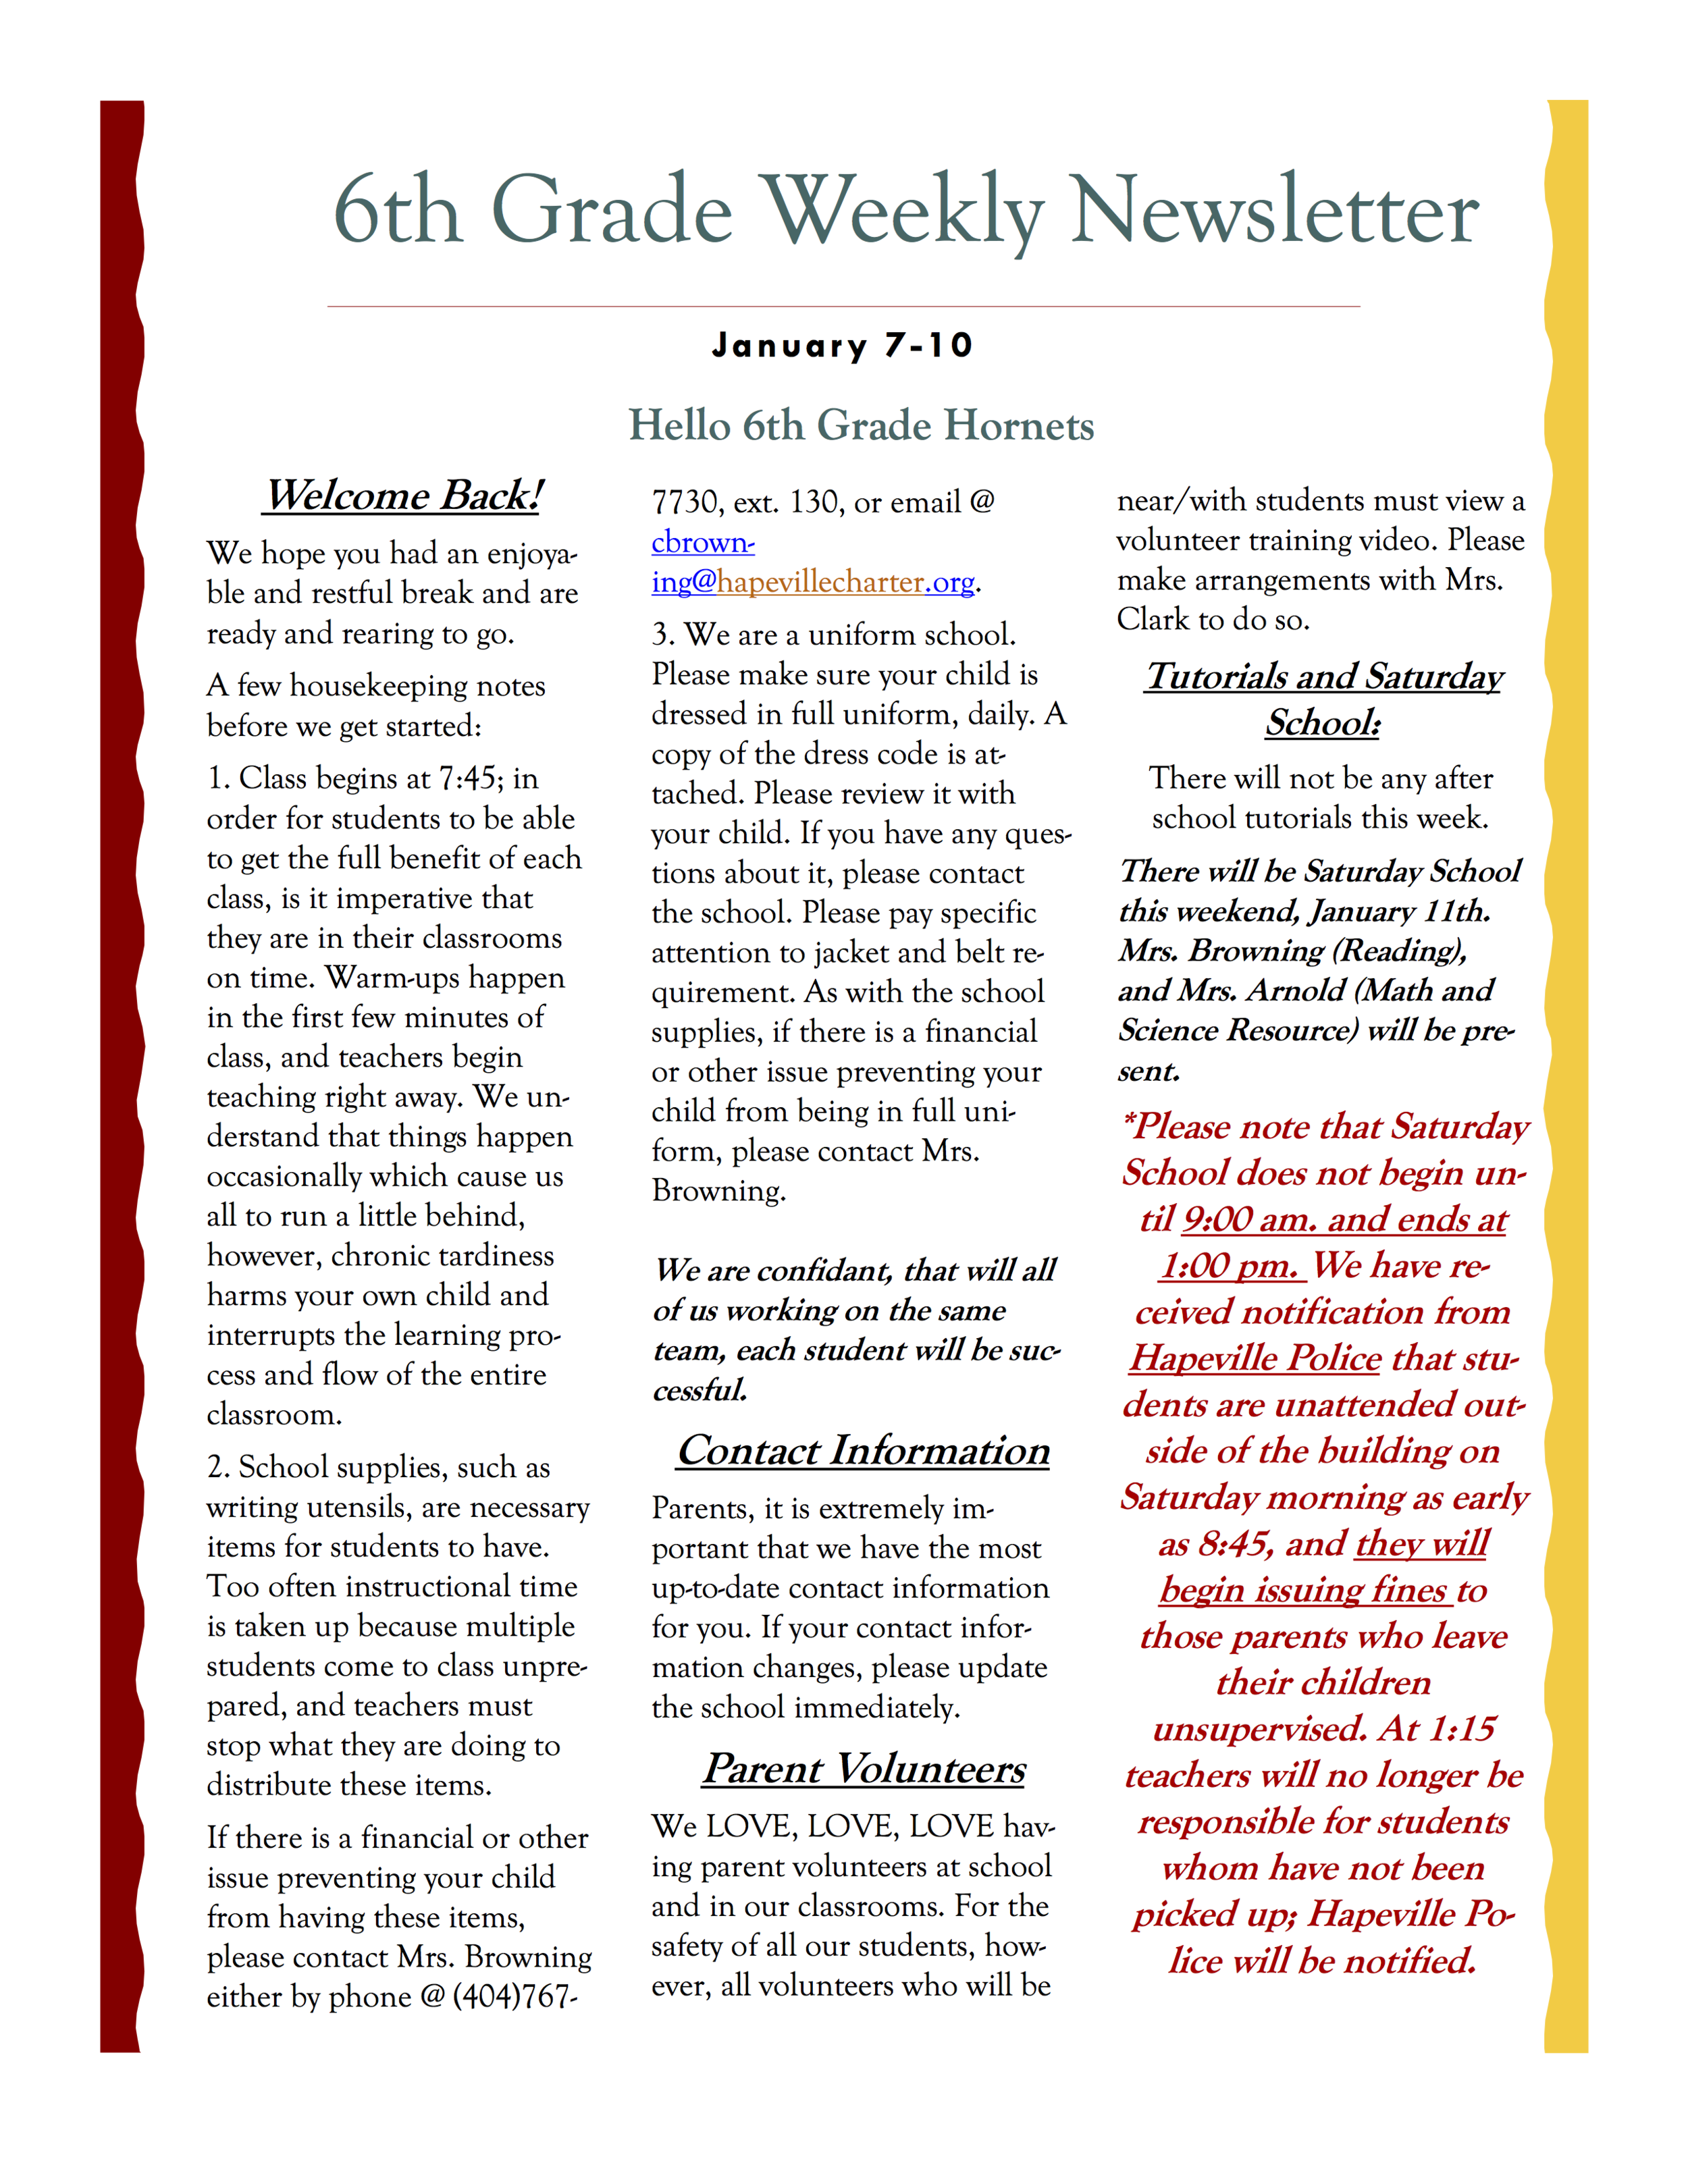 6th Grade Newsletter 1-7A.png